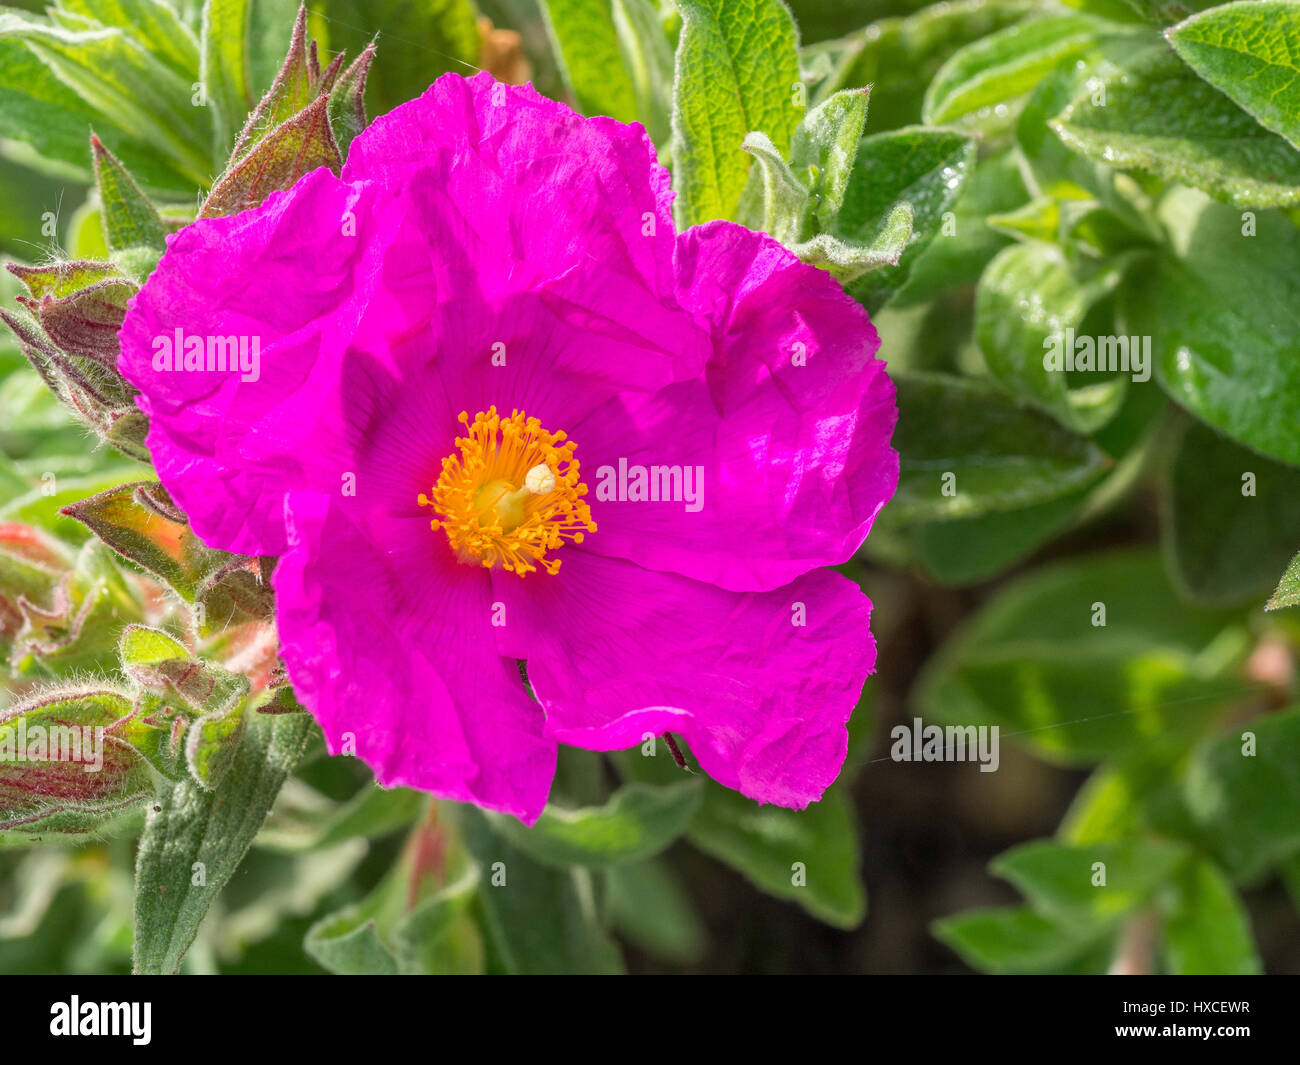 Single flower of Cistus x pulverulentus Sunset - Stock Image